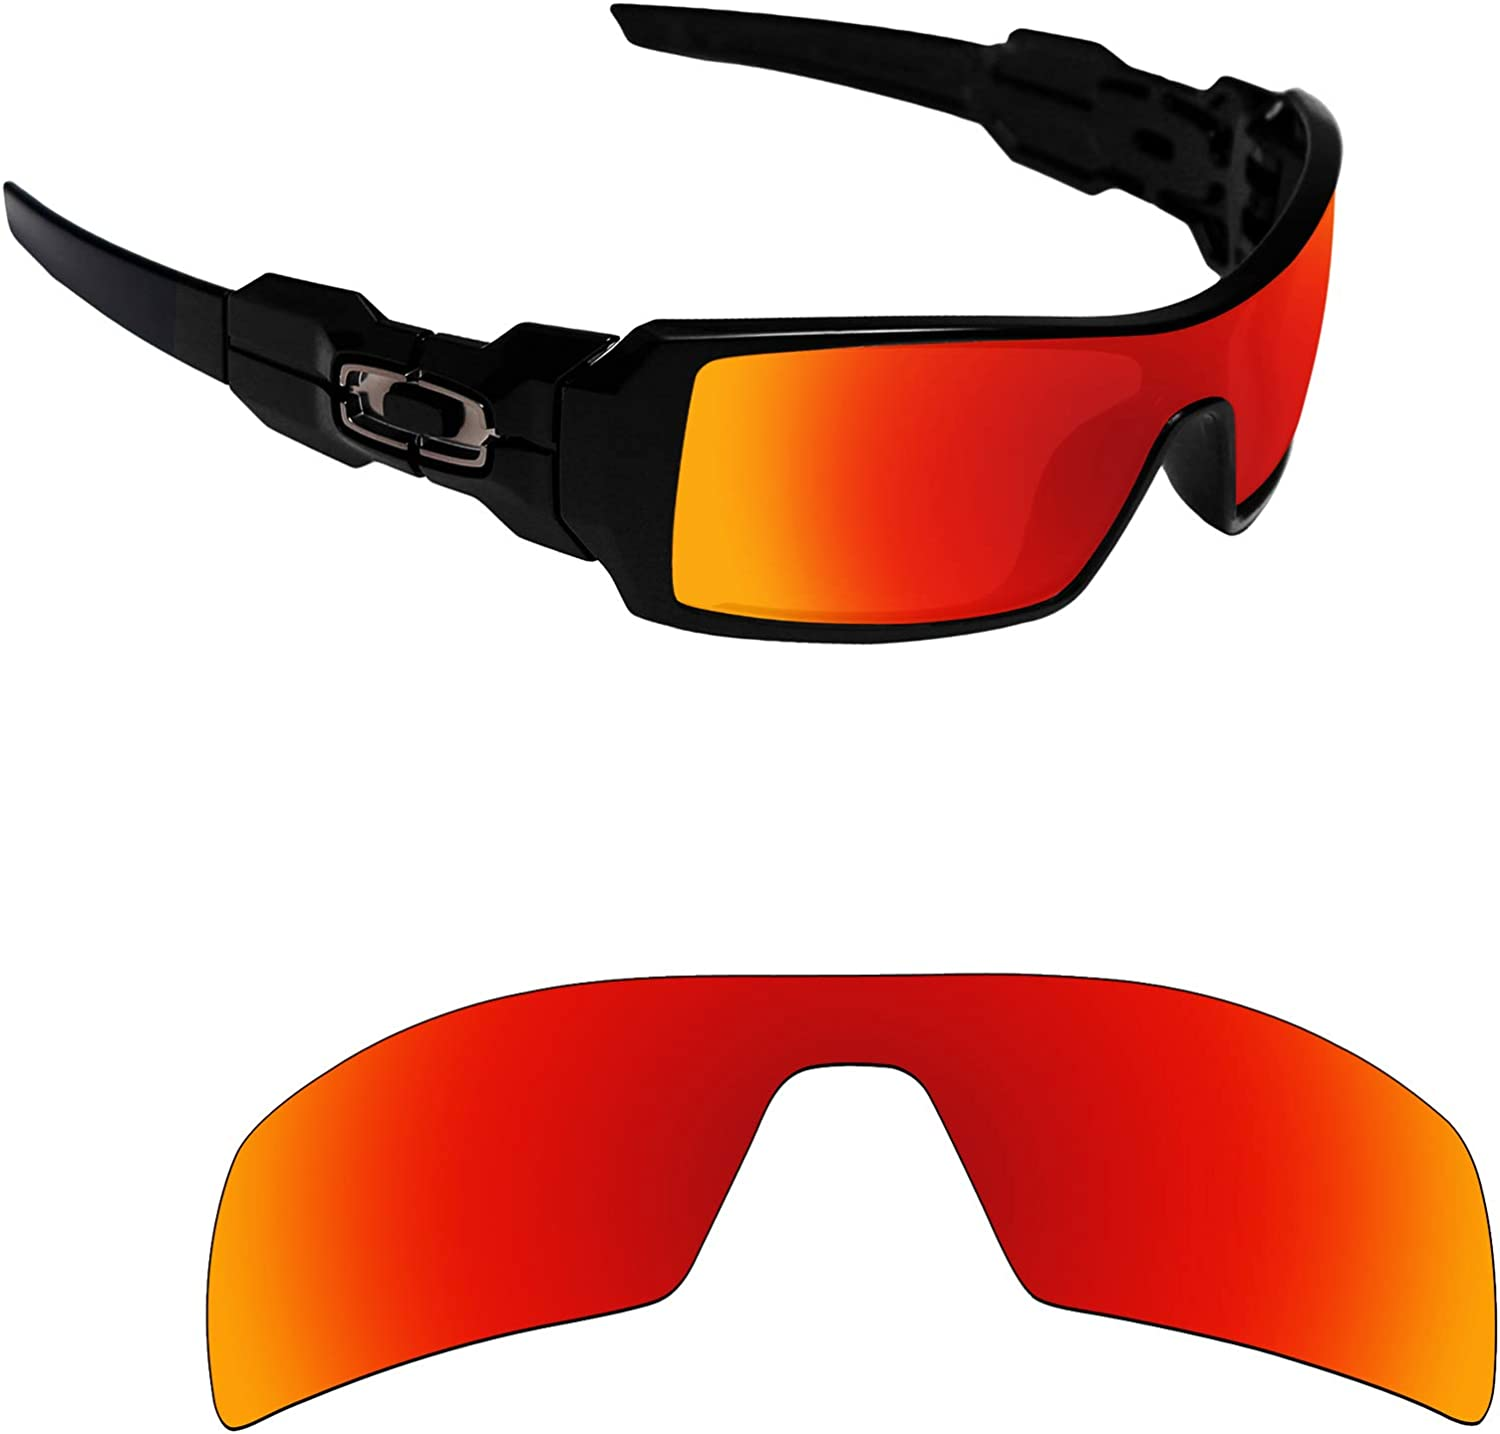 Alphax Polarized Replacement Credence Lenses for Multipl Oakley Oil - Rig Super intense SALE